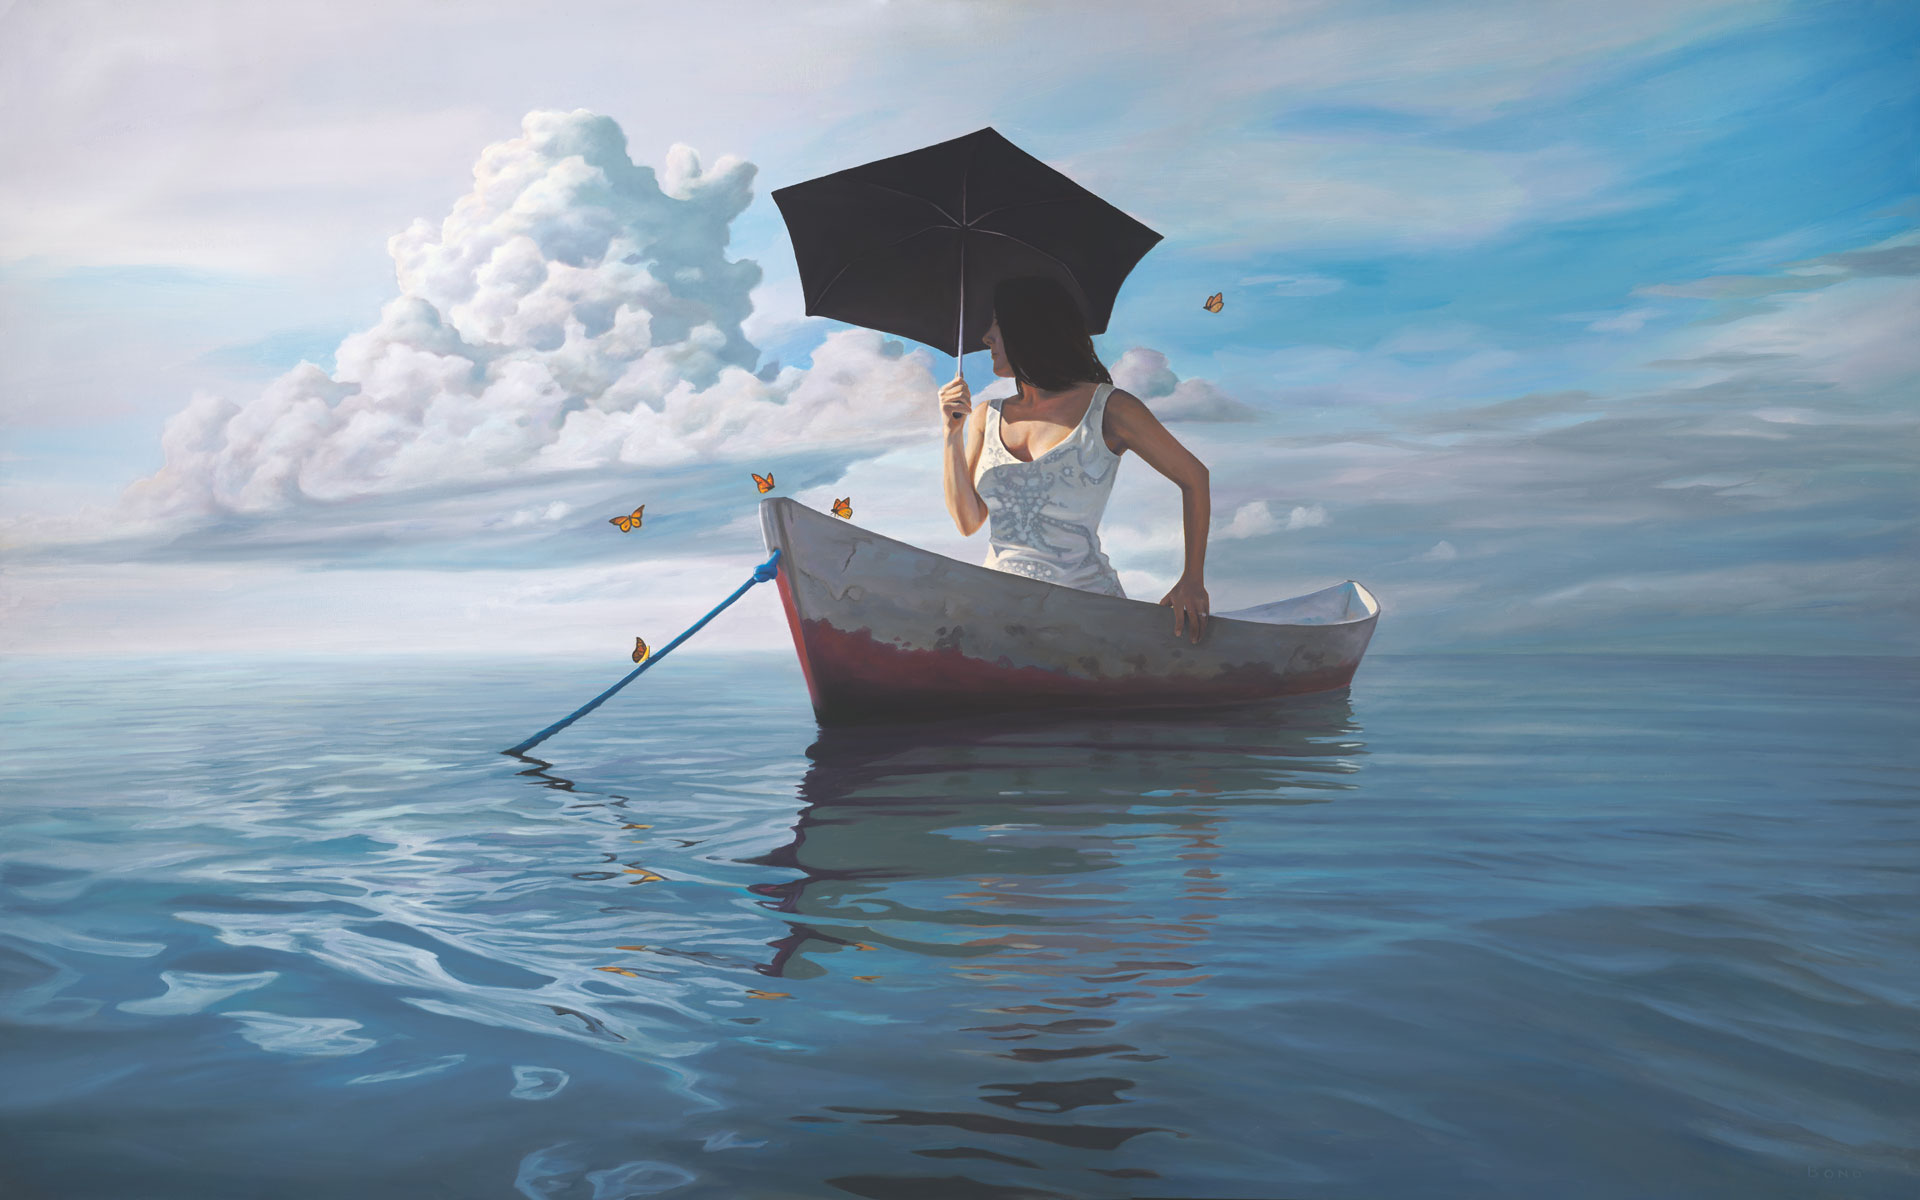 The Girl Who Married a Cloud, painting of a woman wearing a white wedding dress in row boat, art with butterflies surrounding a woman, portrait of a girl woman in a canoe boat, art with water, ocean, waves, painting of girl with umbrella, art about idealism, art about marriage and relationship, soulful uplifting inspirational art, soul stirring illusion art, romantic art,  surrealism, surreal art, dreamlike imagery, fanciful art, fantasy art, dreamscape visual, metaphysical art, spiritual painting, metaphysical painting, spiritual art, whimsical art, whimsy art, dream art, fantastic realism art, limited edition giclee, signed art print, fine art reproduction, original magic realism oil painting by Paul Bond